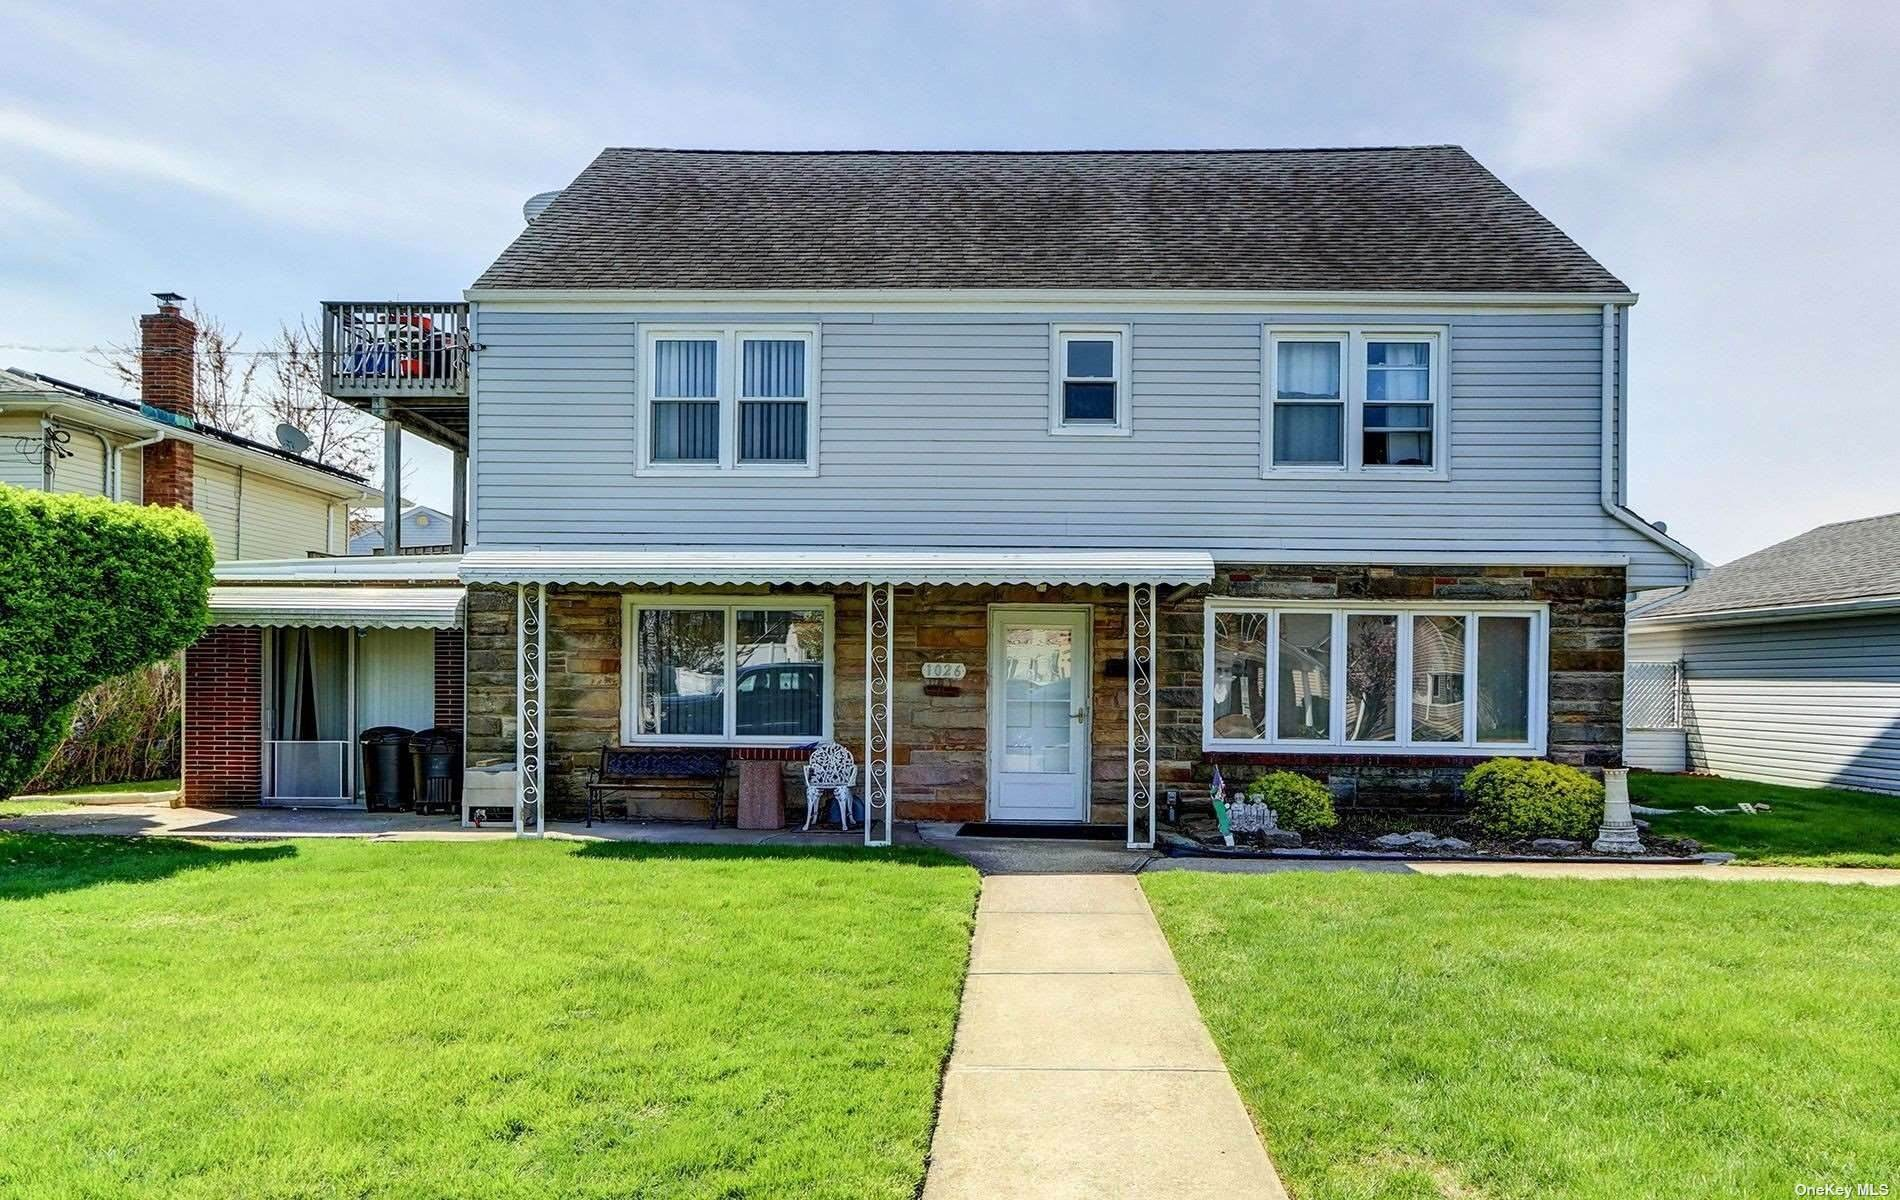 Residential for Sale at 1026 Knickerbocker Road, Island Park, NY 11558 Island Park, New York 11558 United States